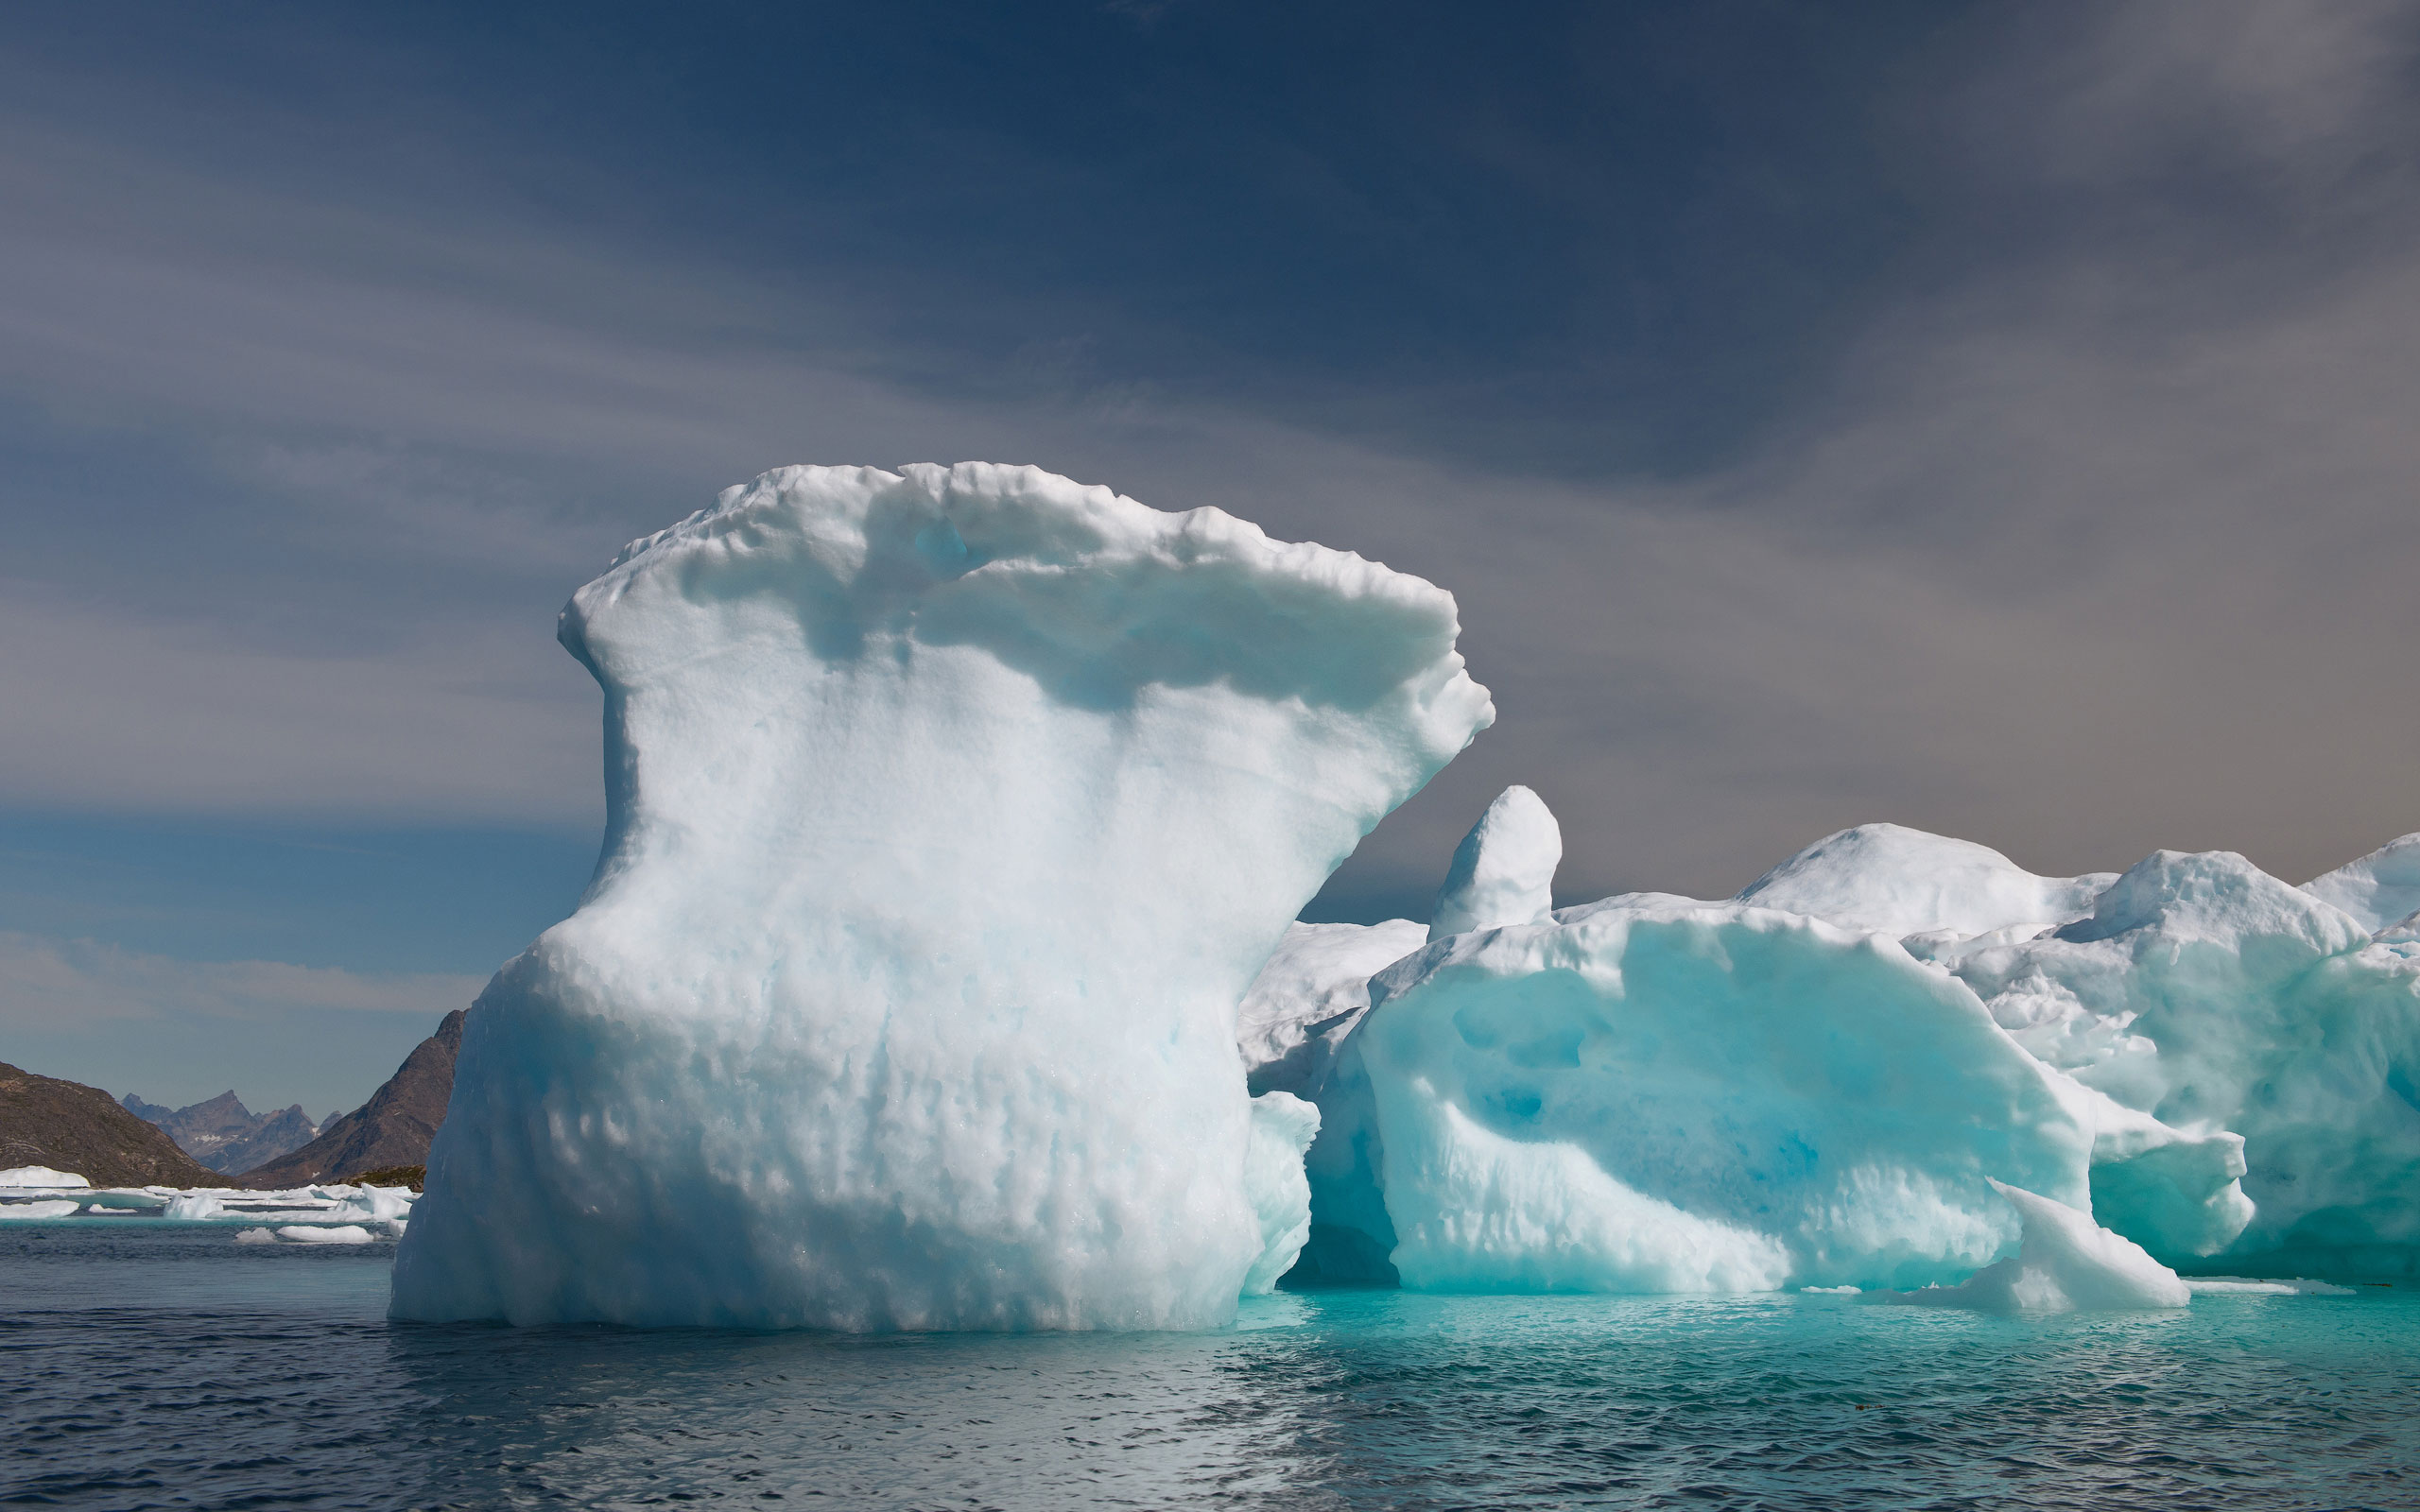 Frozen wave. Iceberg offshore Southeastern Greenland. - Greenland-Iceberg-Factory-1 - Mike Reyfman Photography